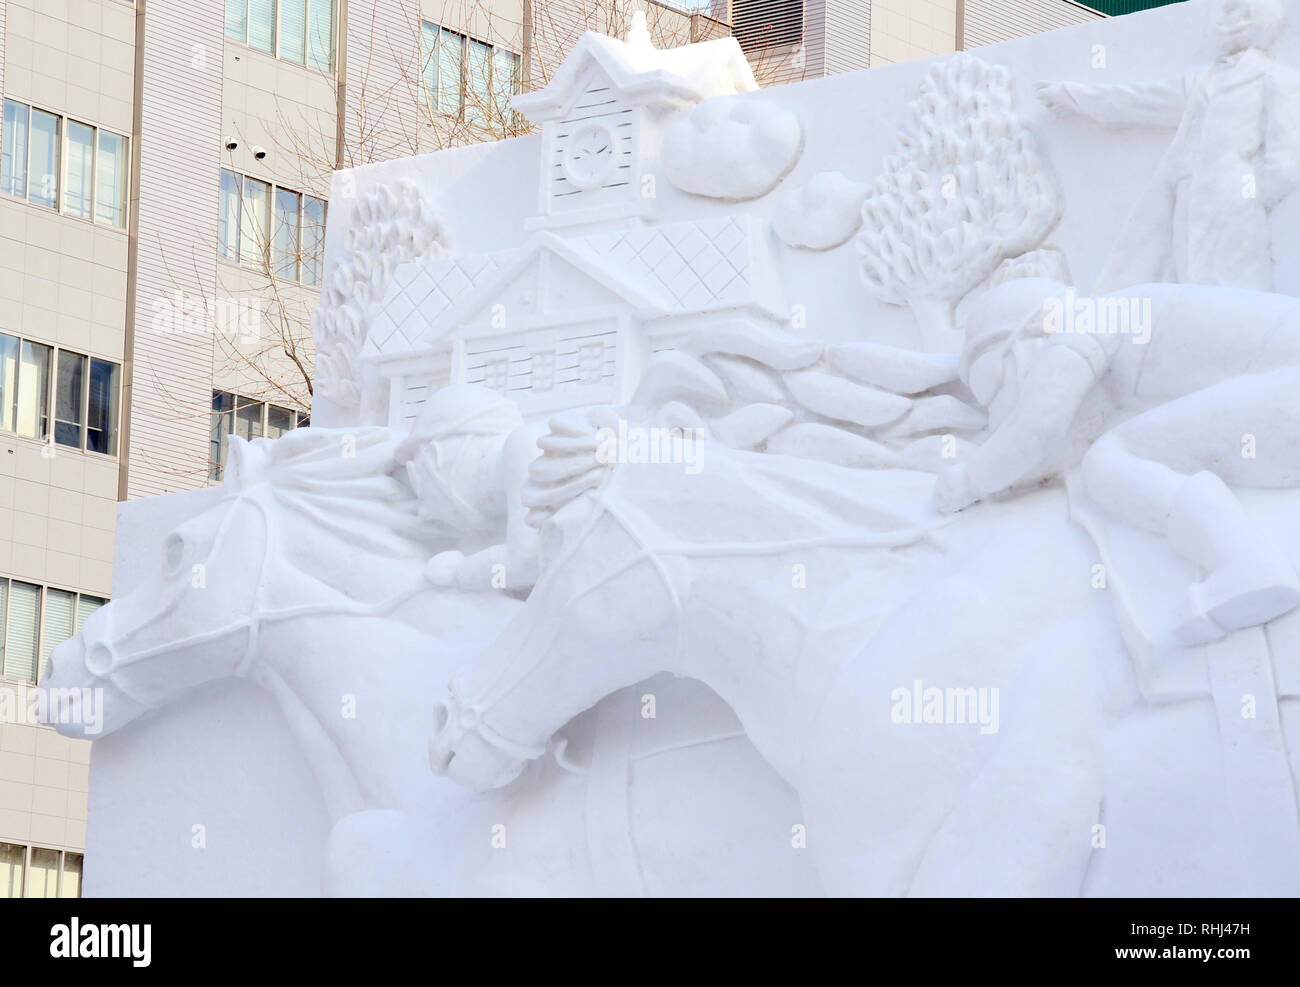 Sapporo Japan 3rd Feb 2019 A Large Snow Sculpture Of Horse Racing Is Displayed At The